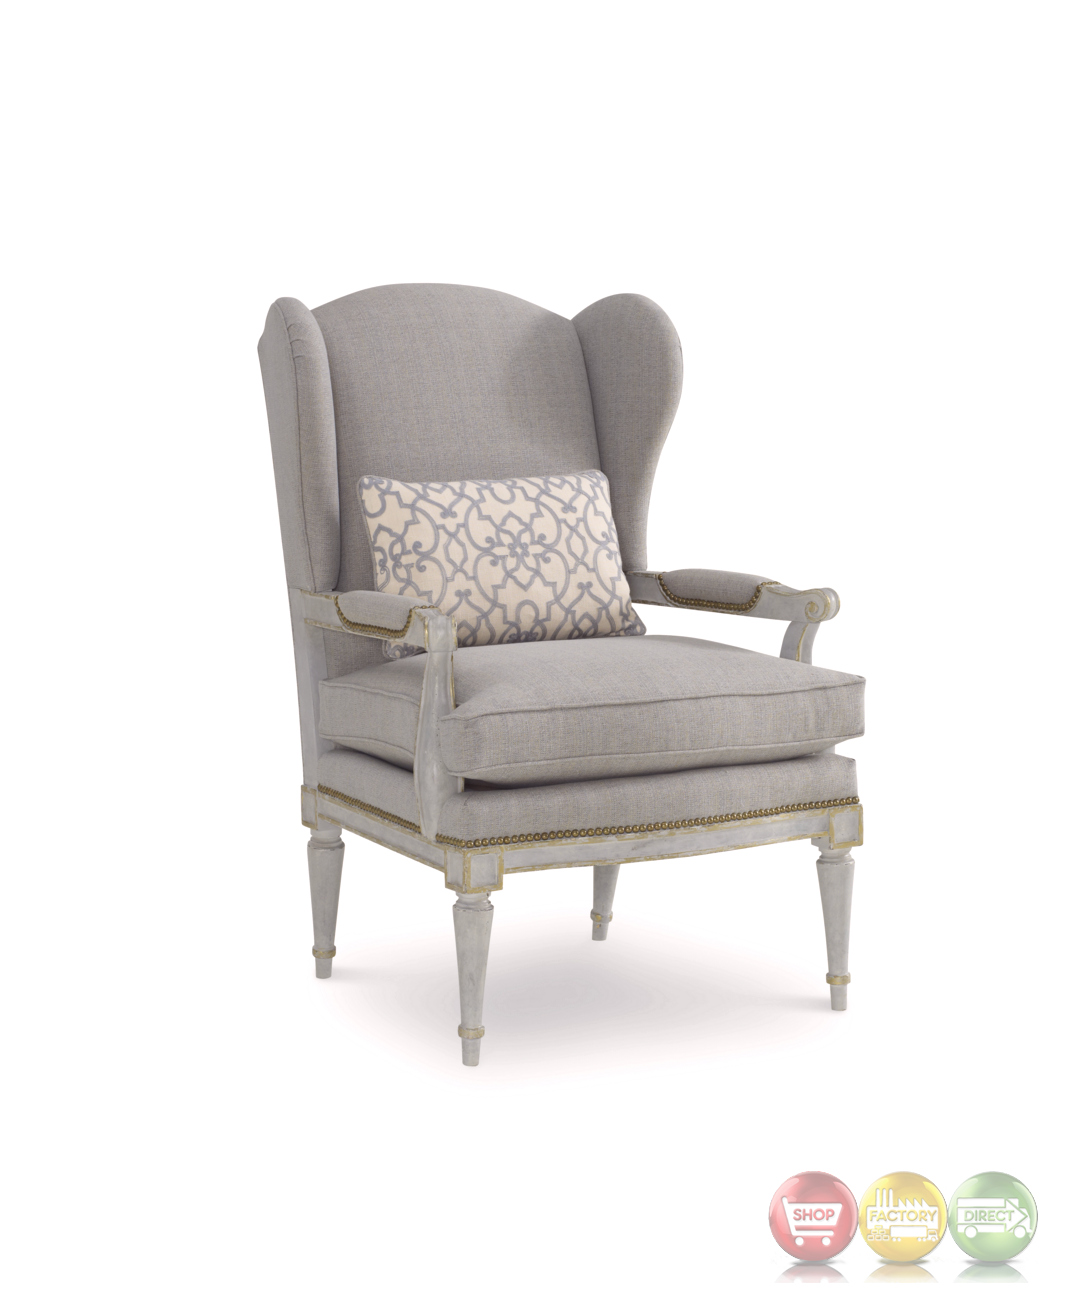 The Foundry French Provincial Wingback Chair In Distressed